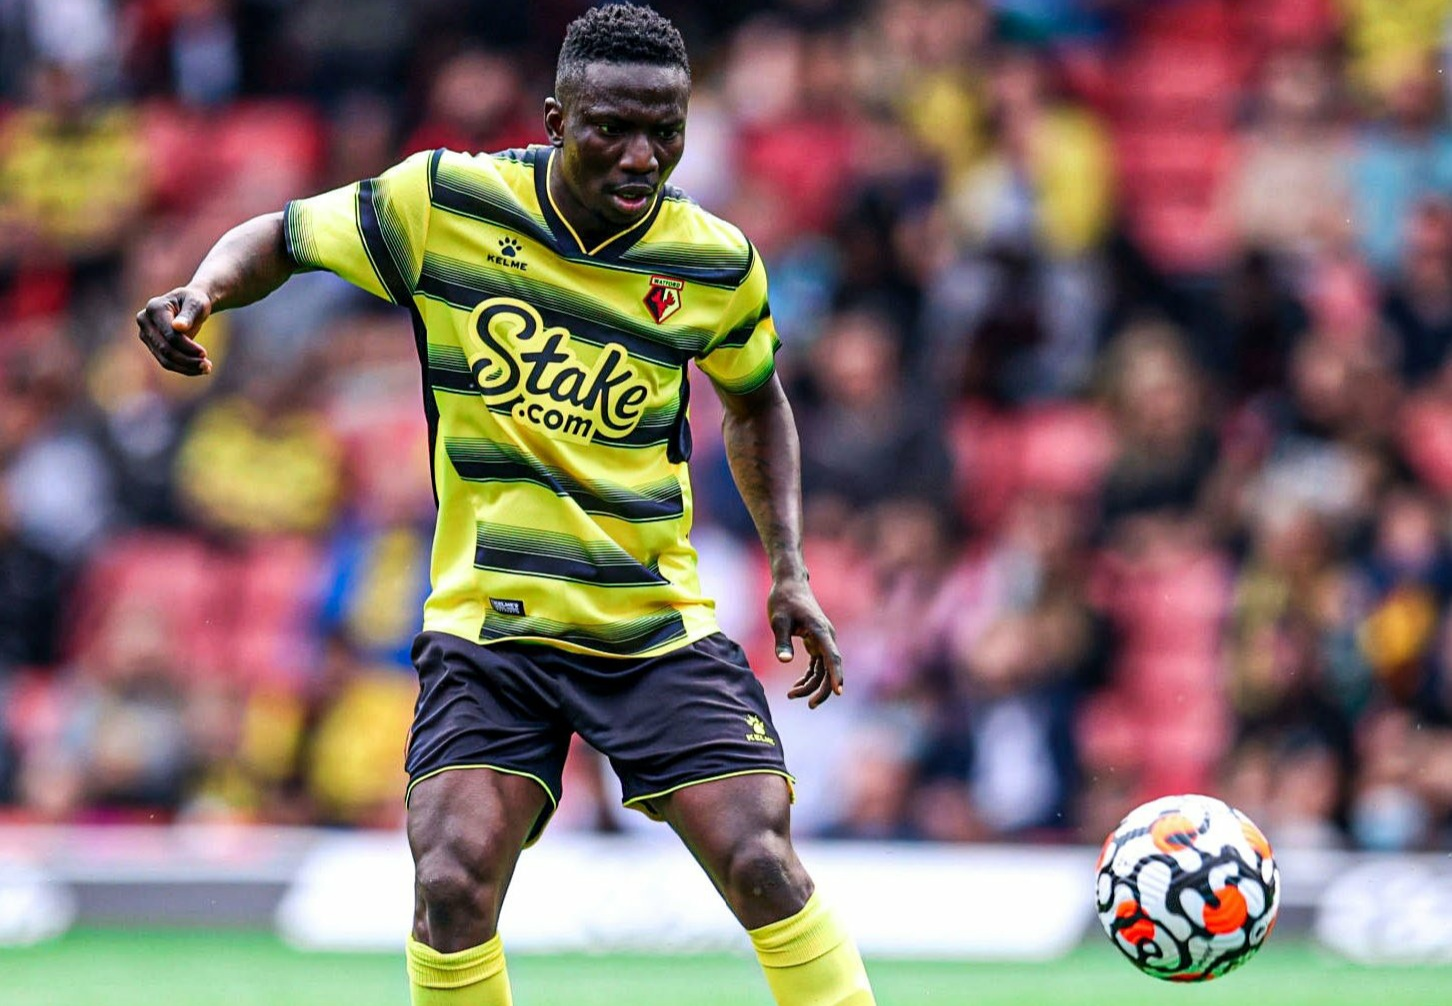 Super Eagles midfielder ETEBO is injured, could be out for five months